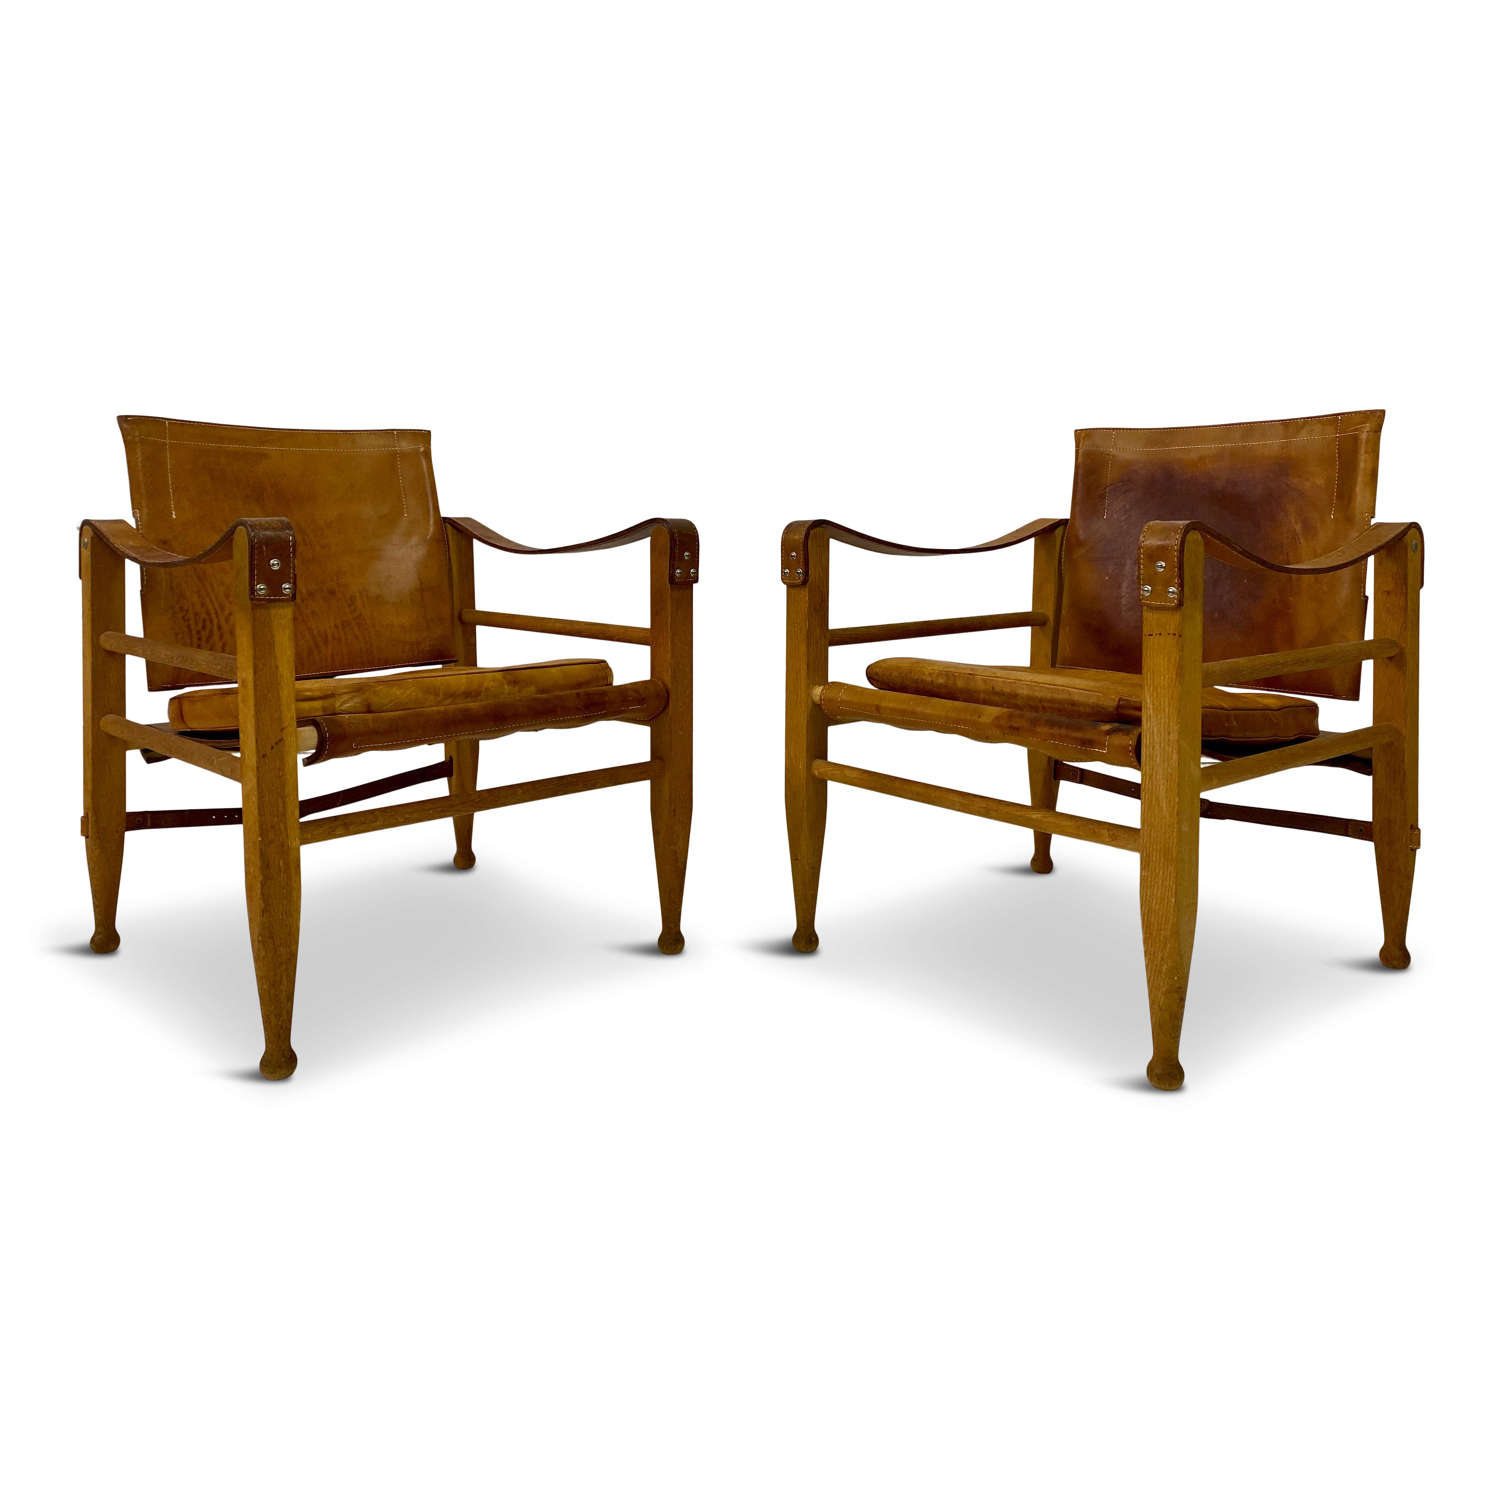 Pair of 1970s Safari Chairs in Oak and Leather